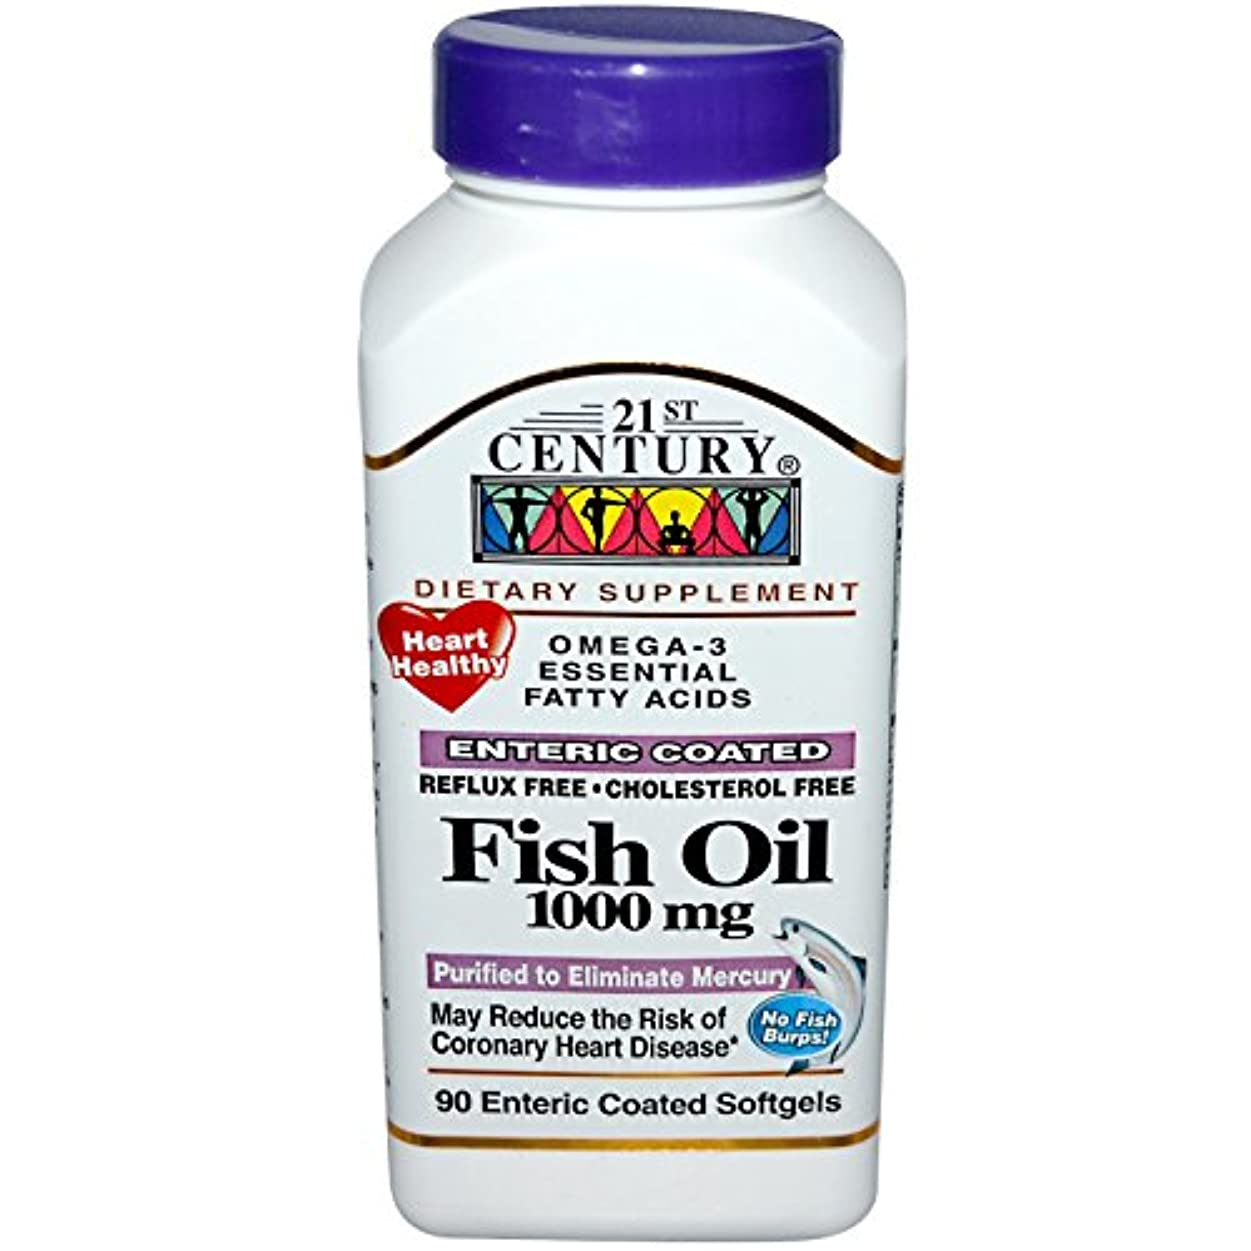 21st Century Health Care, Fish Oil, 1000 mg, 90 Enteric Coated Softgels